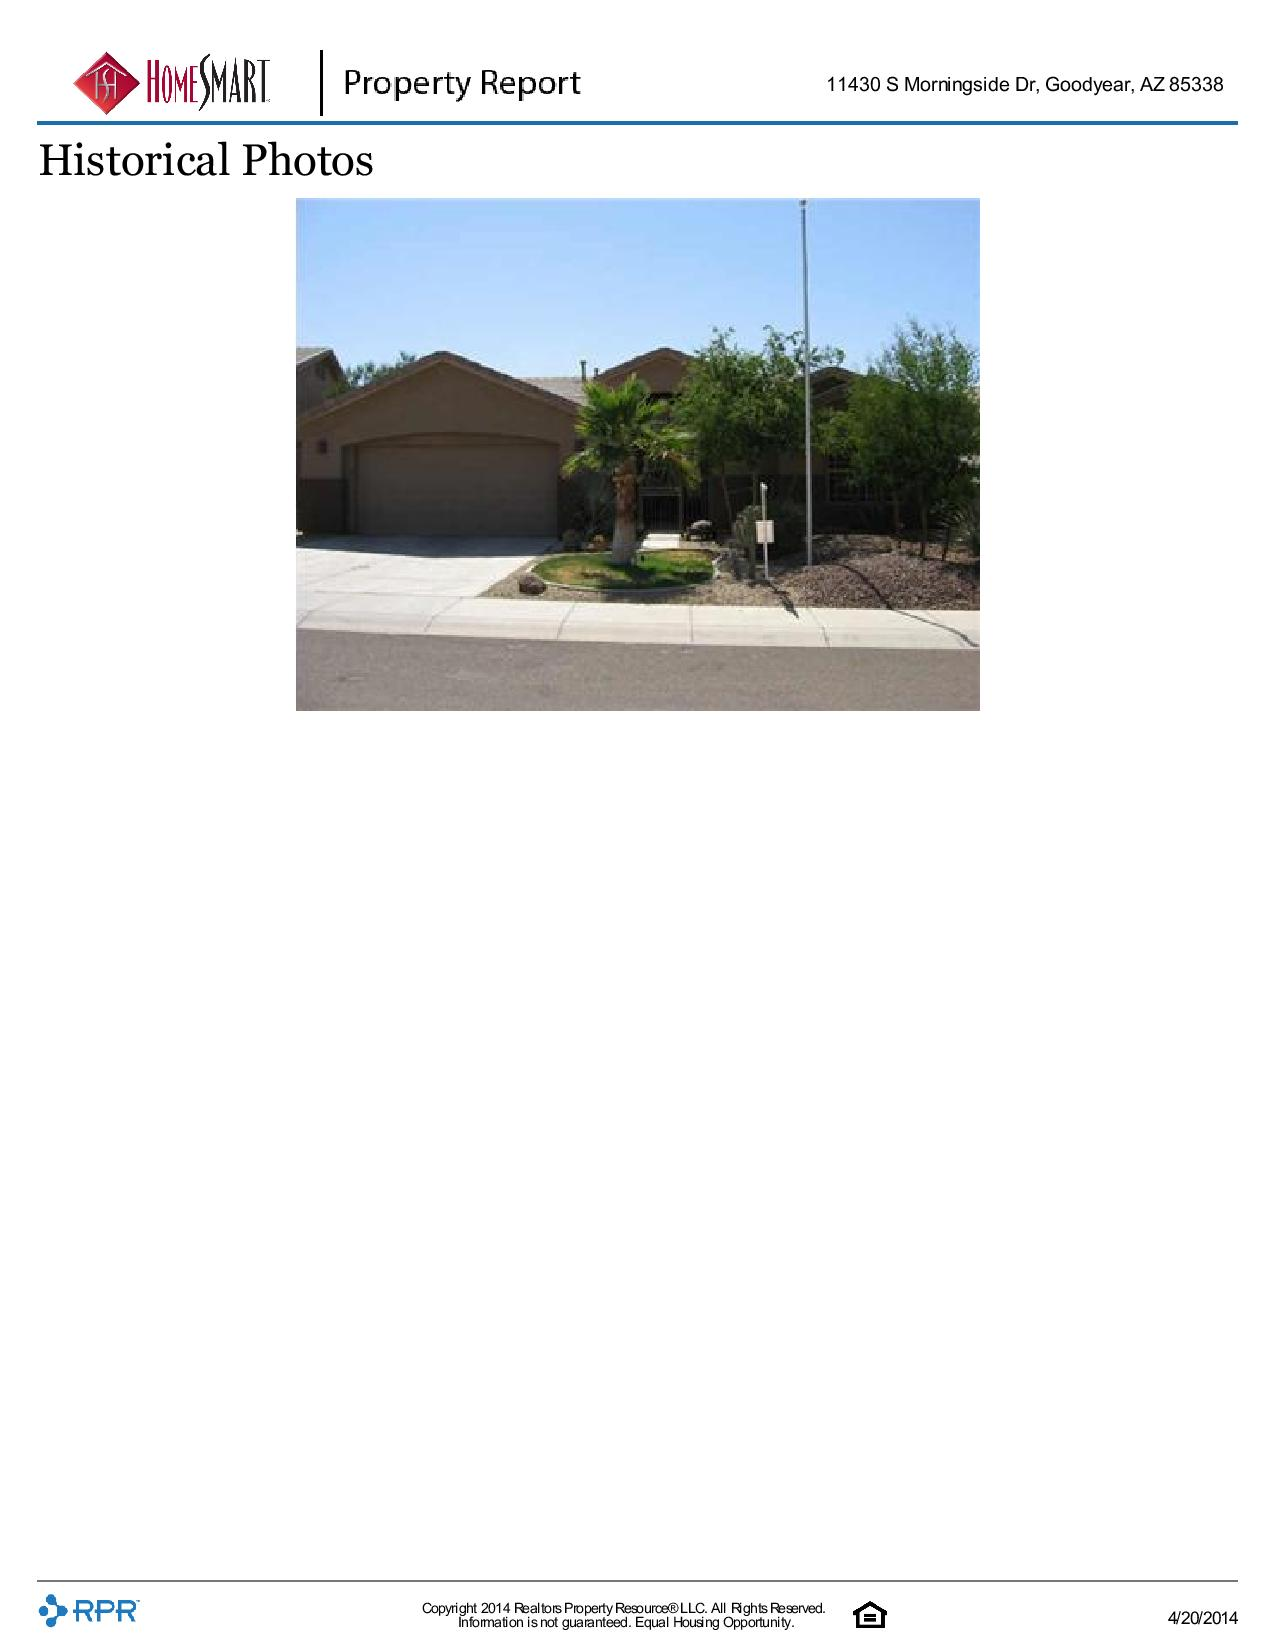 11430-S-Morningside-Dr-Goodyear-AZ-85338-page-007